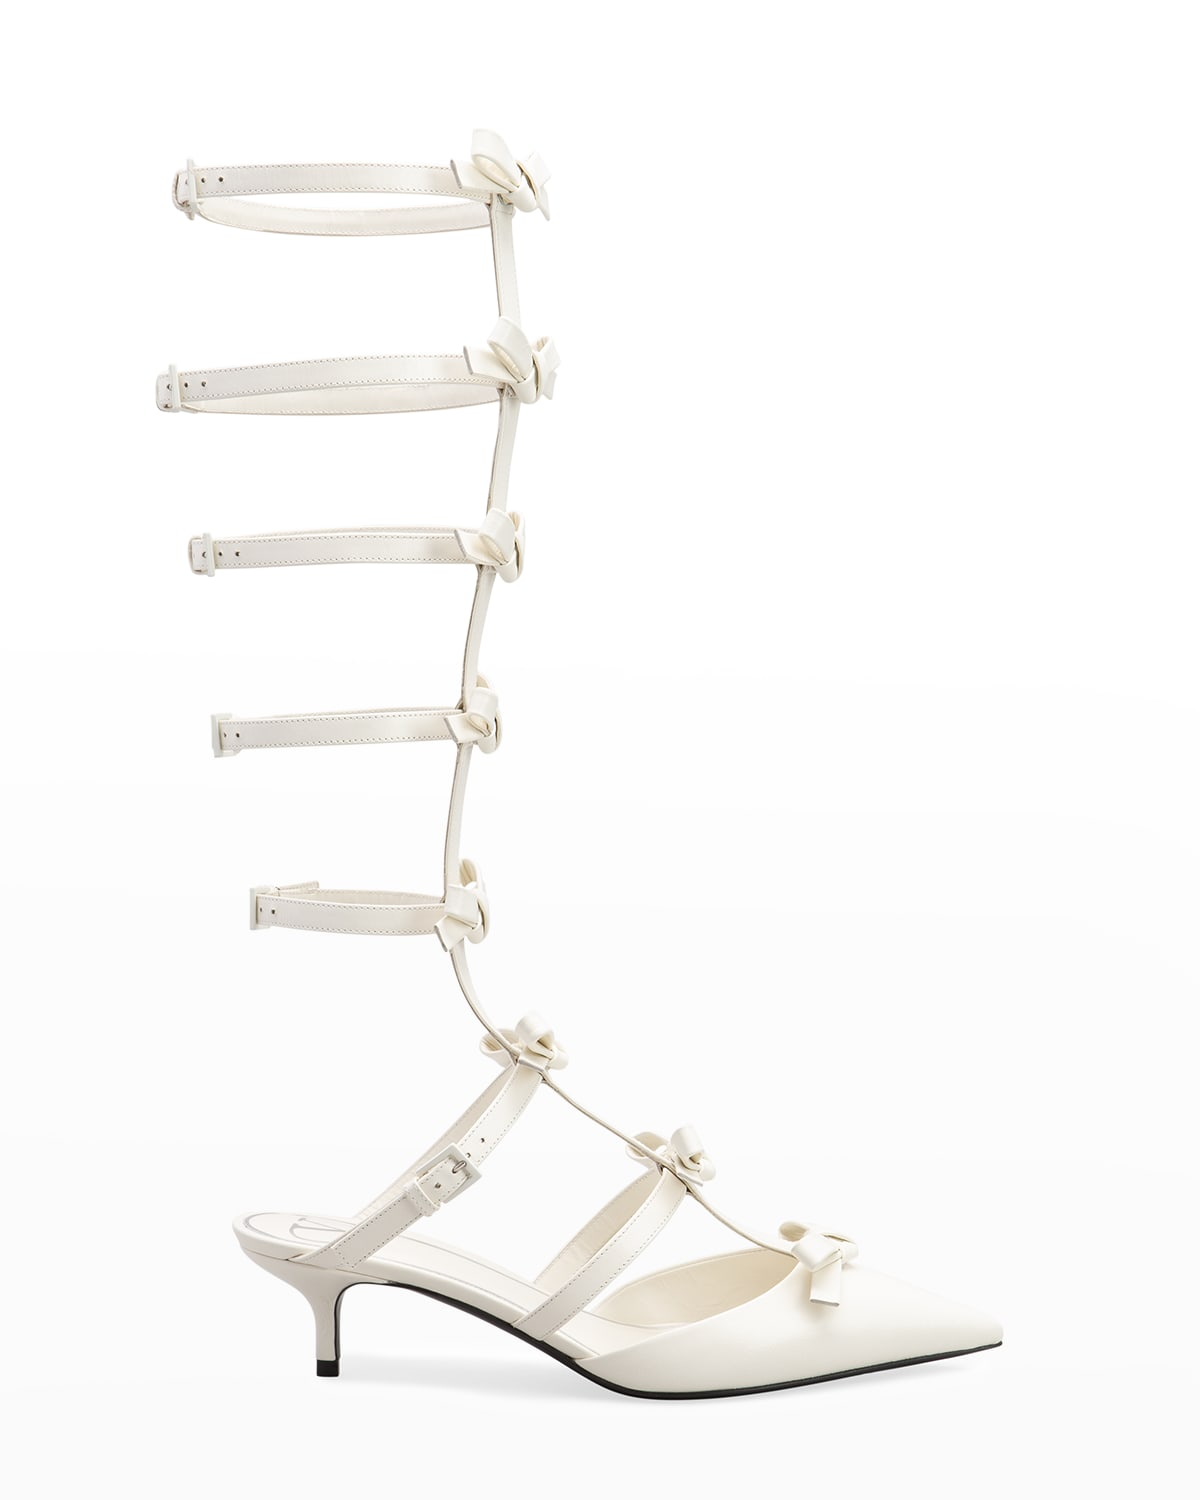 French Bows Gladiator To-The-Knee Pumps